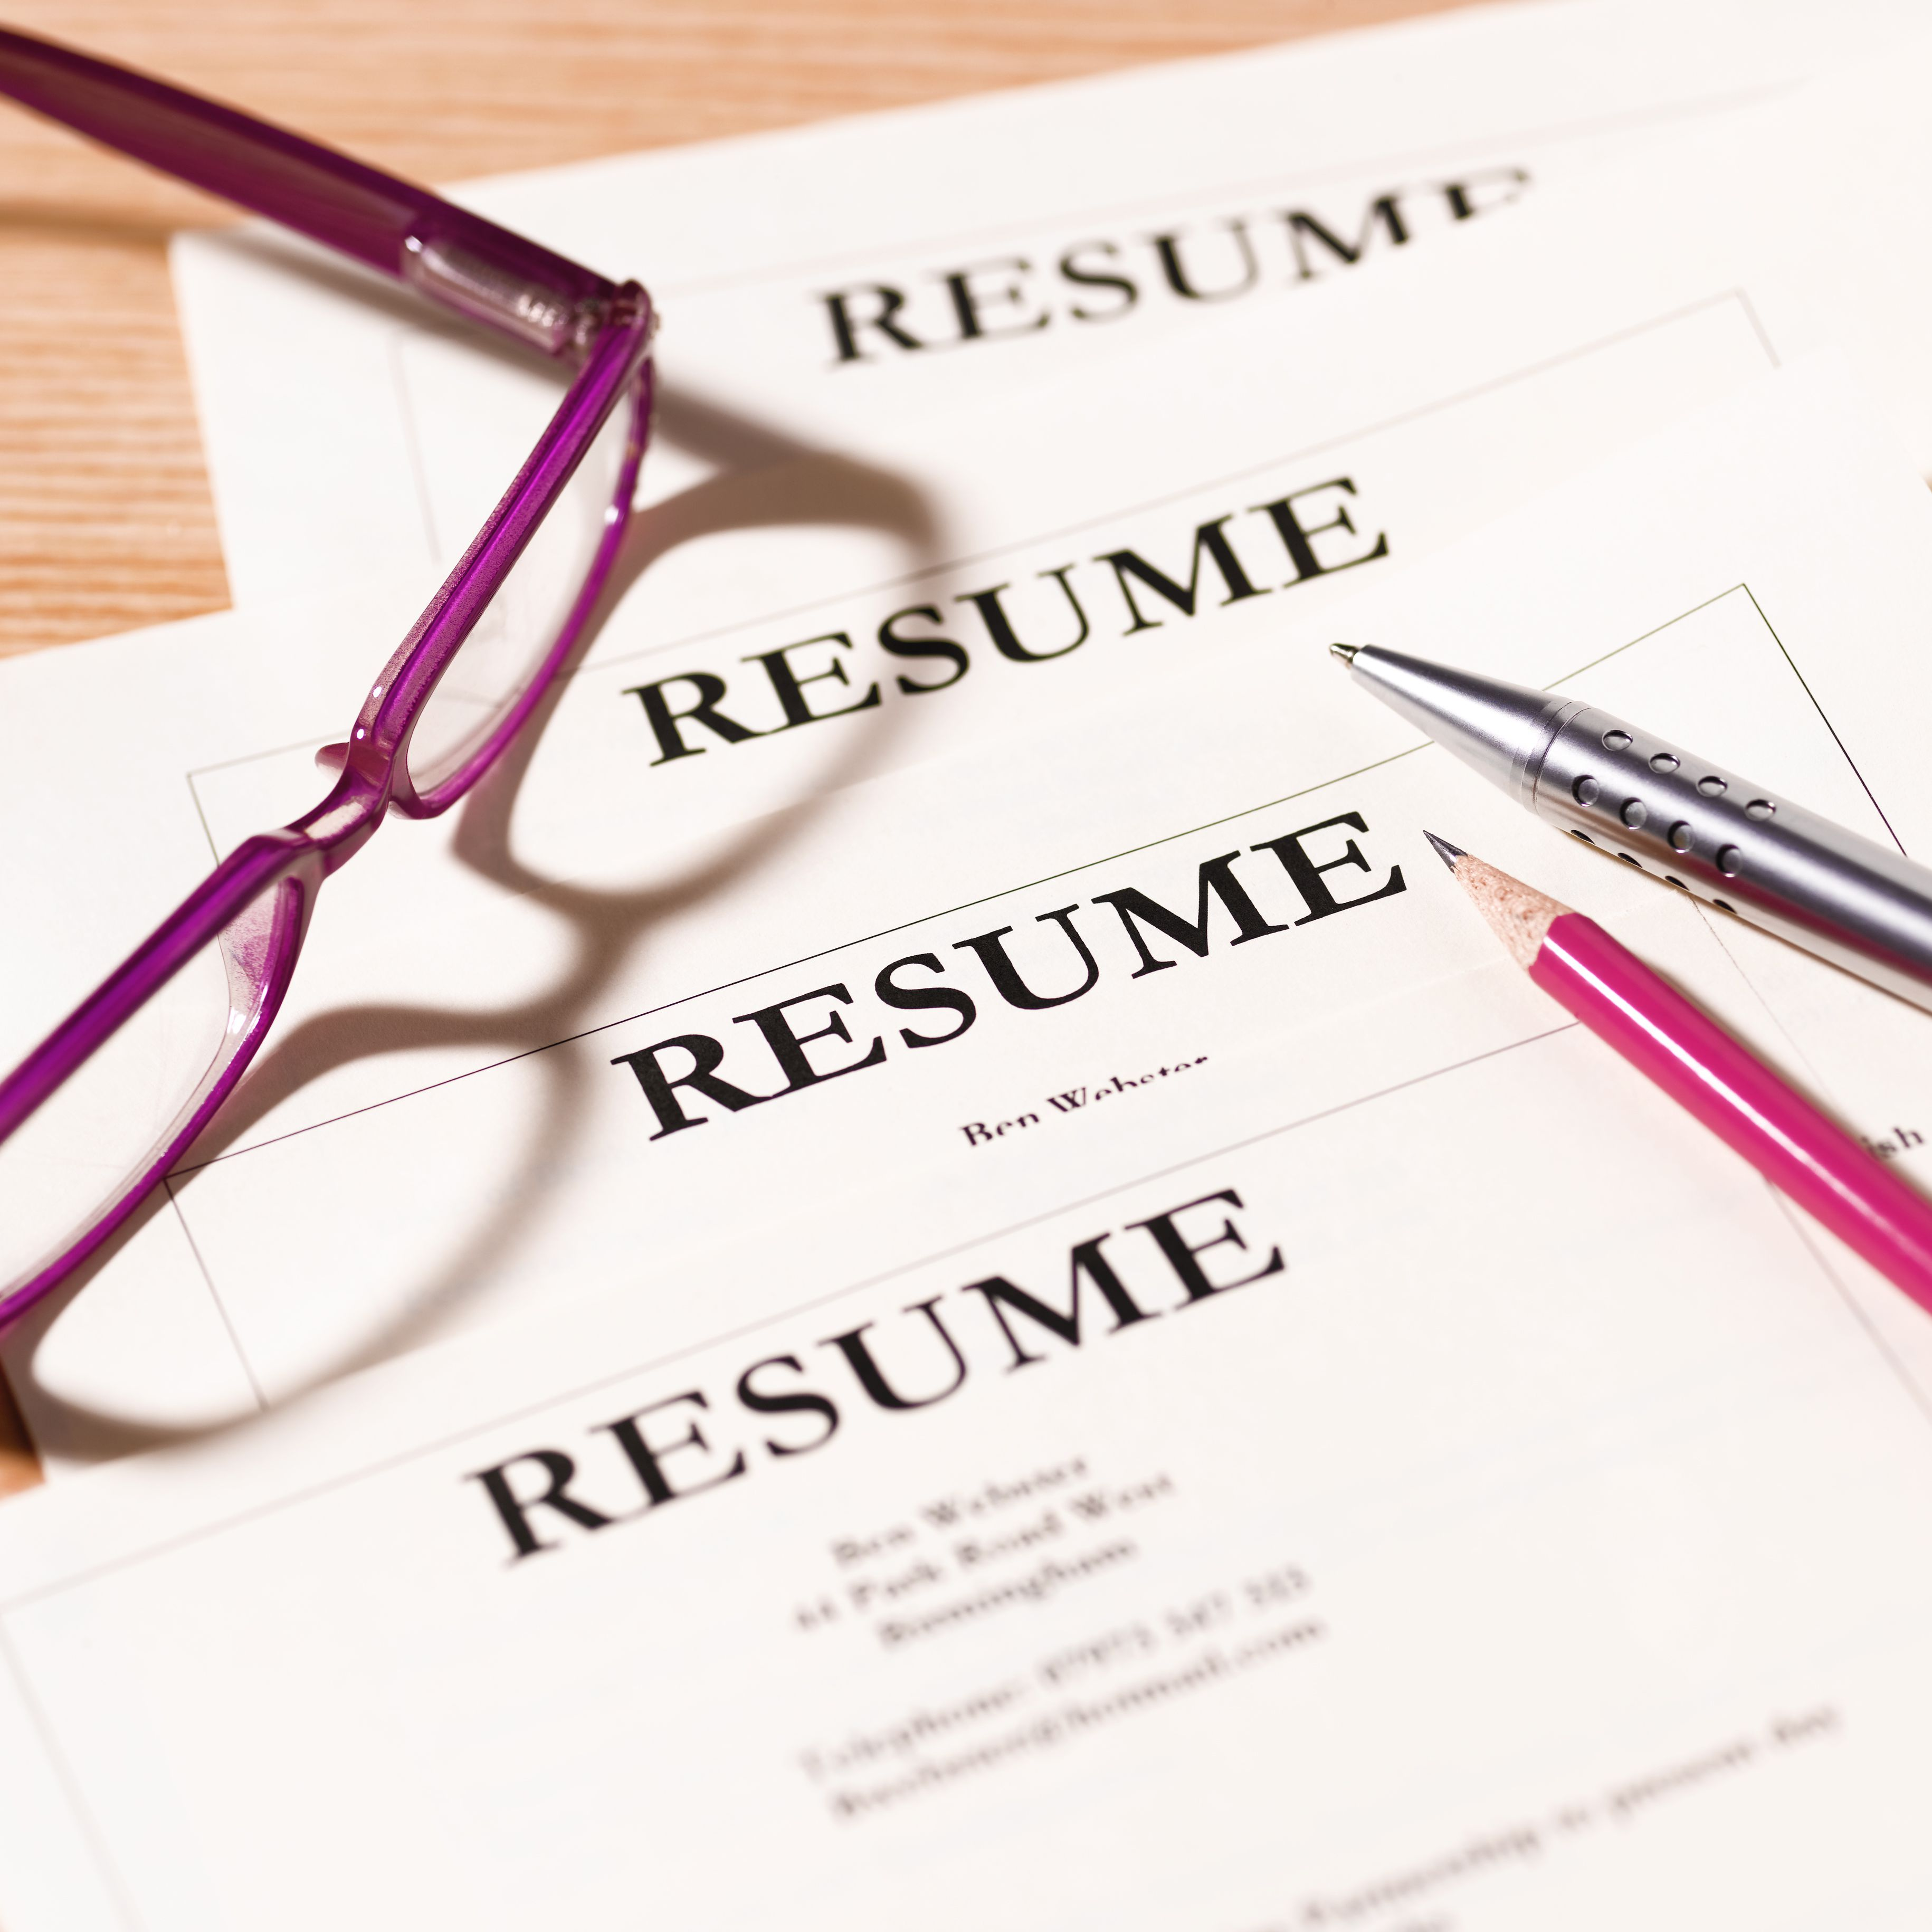 30 Good Resume Words To Include And Avoid